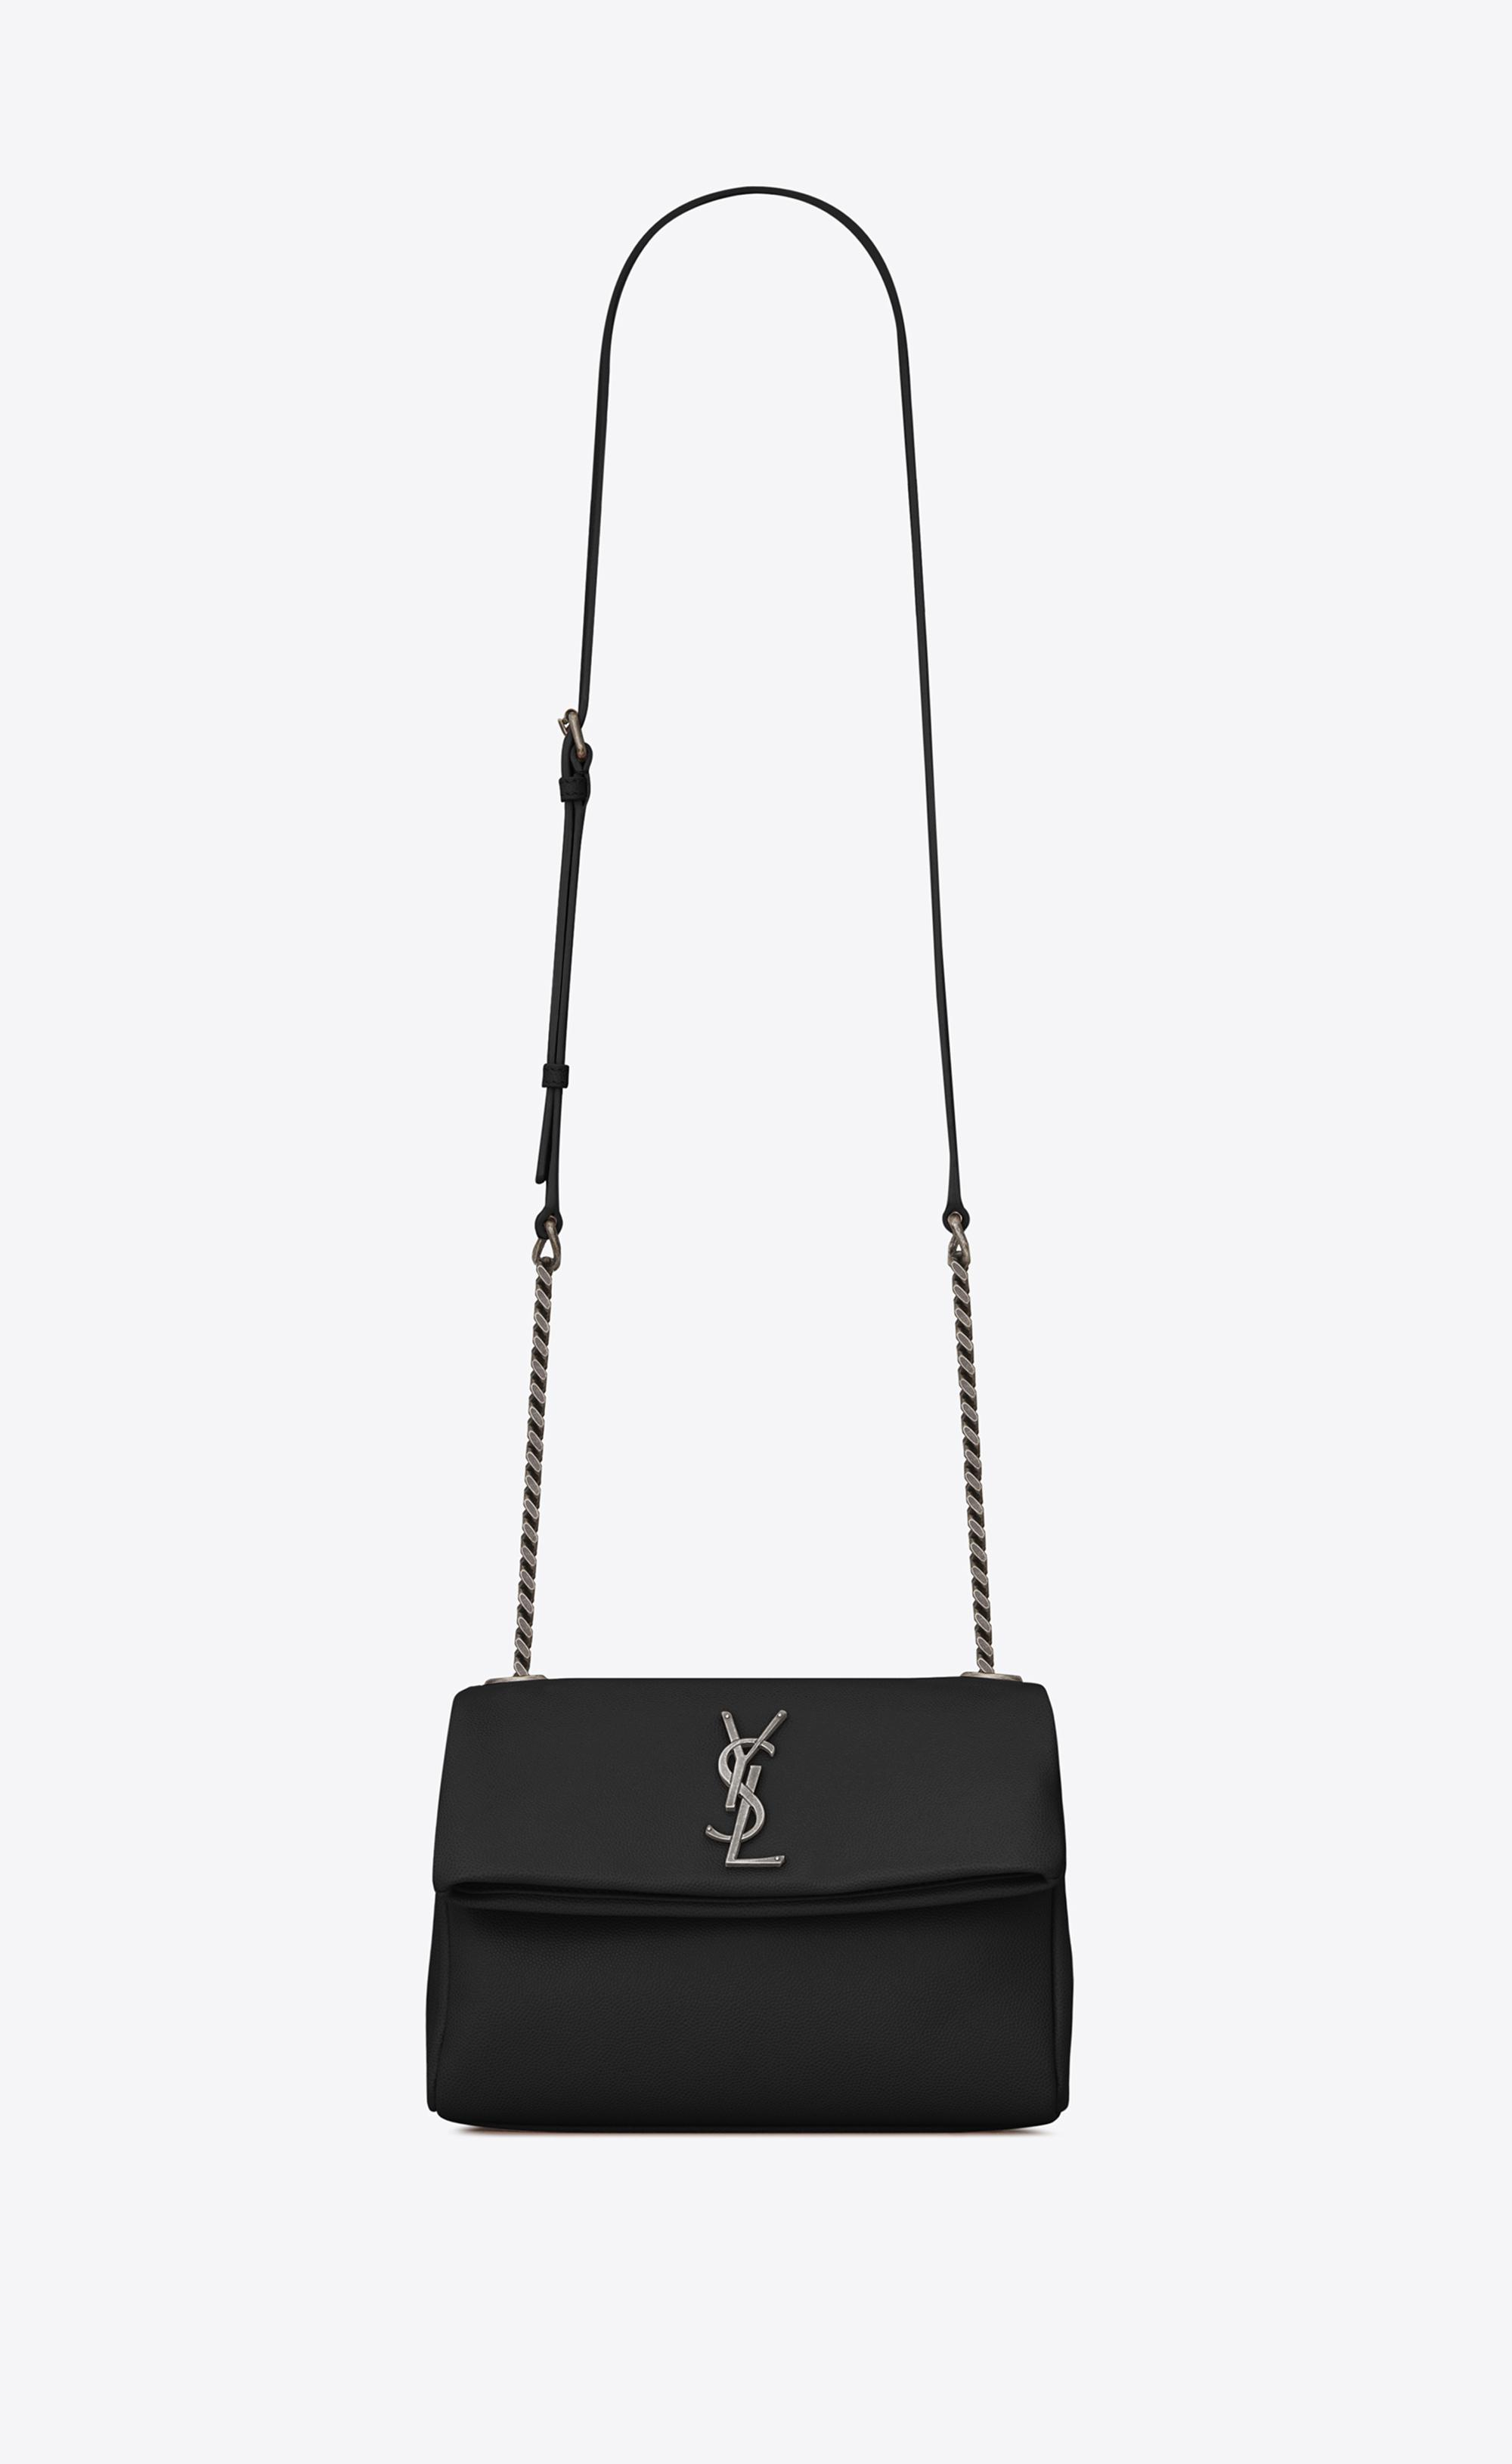 2d04a52aa9 Saint Laurent Small West Hollywood Bag In Black Textured Leather in ...